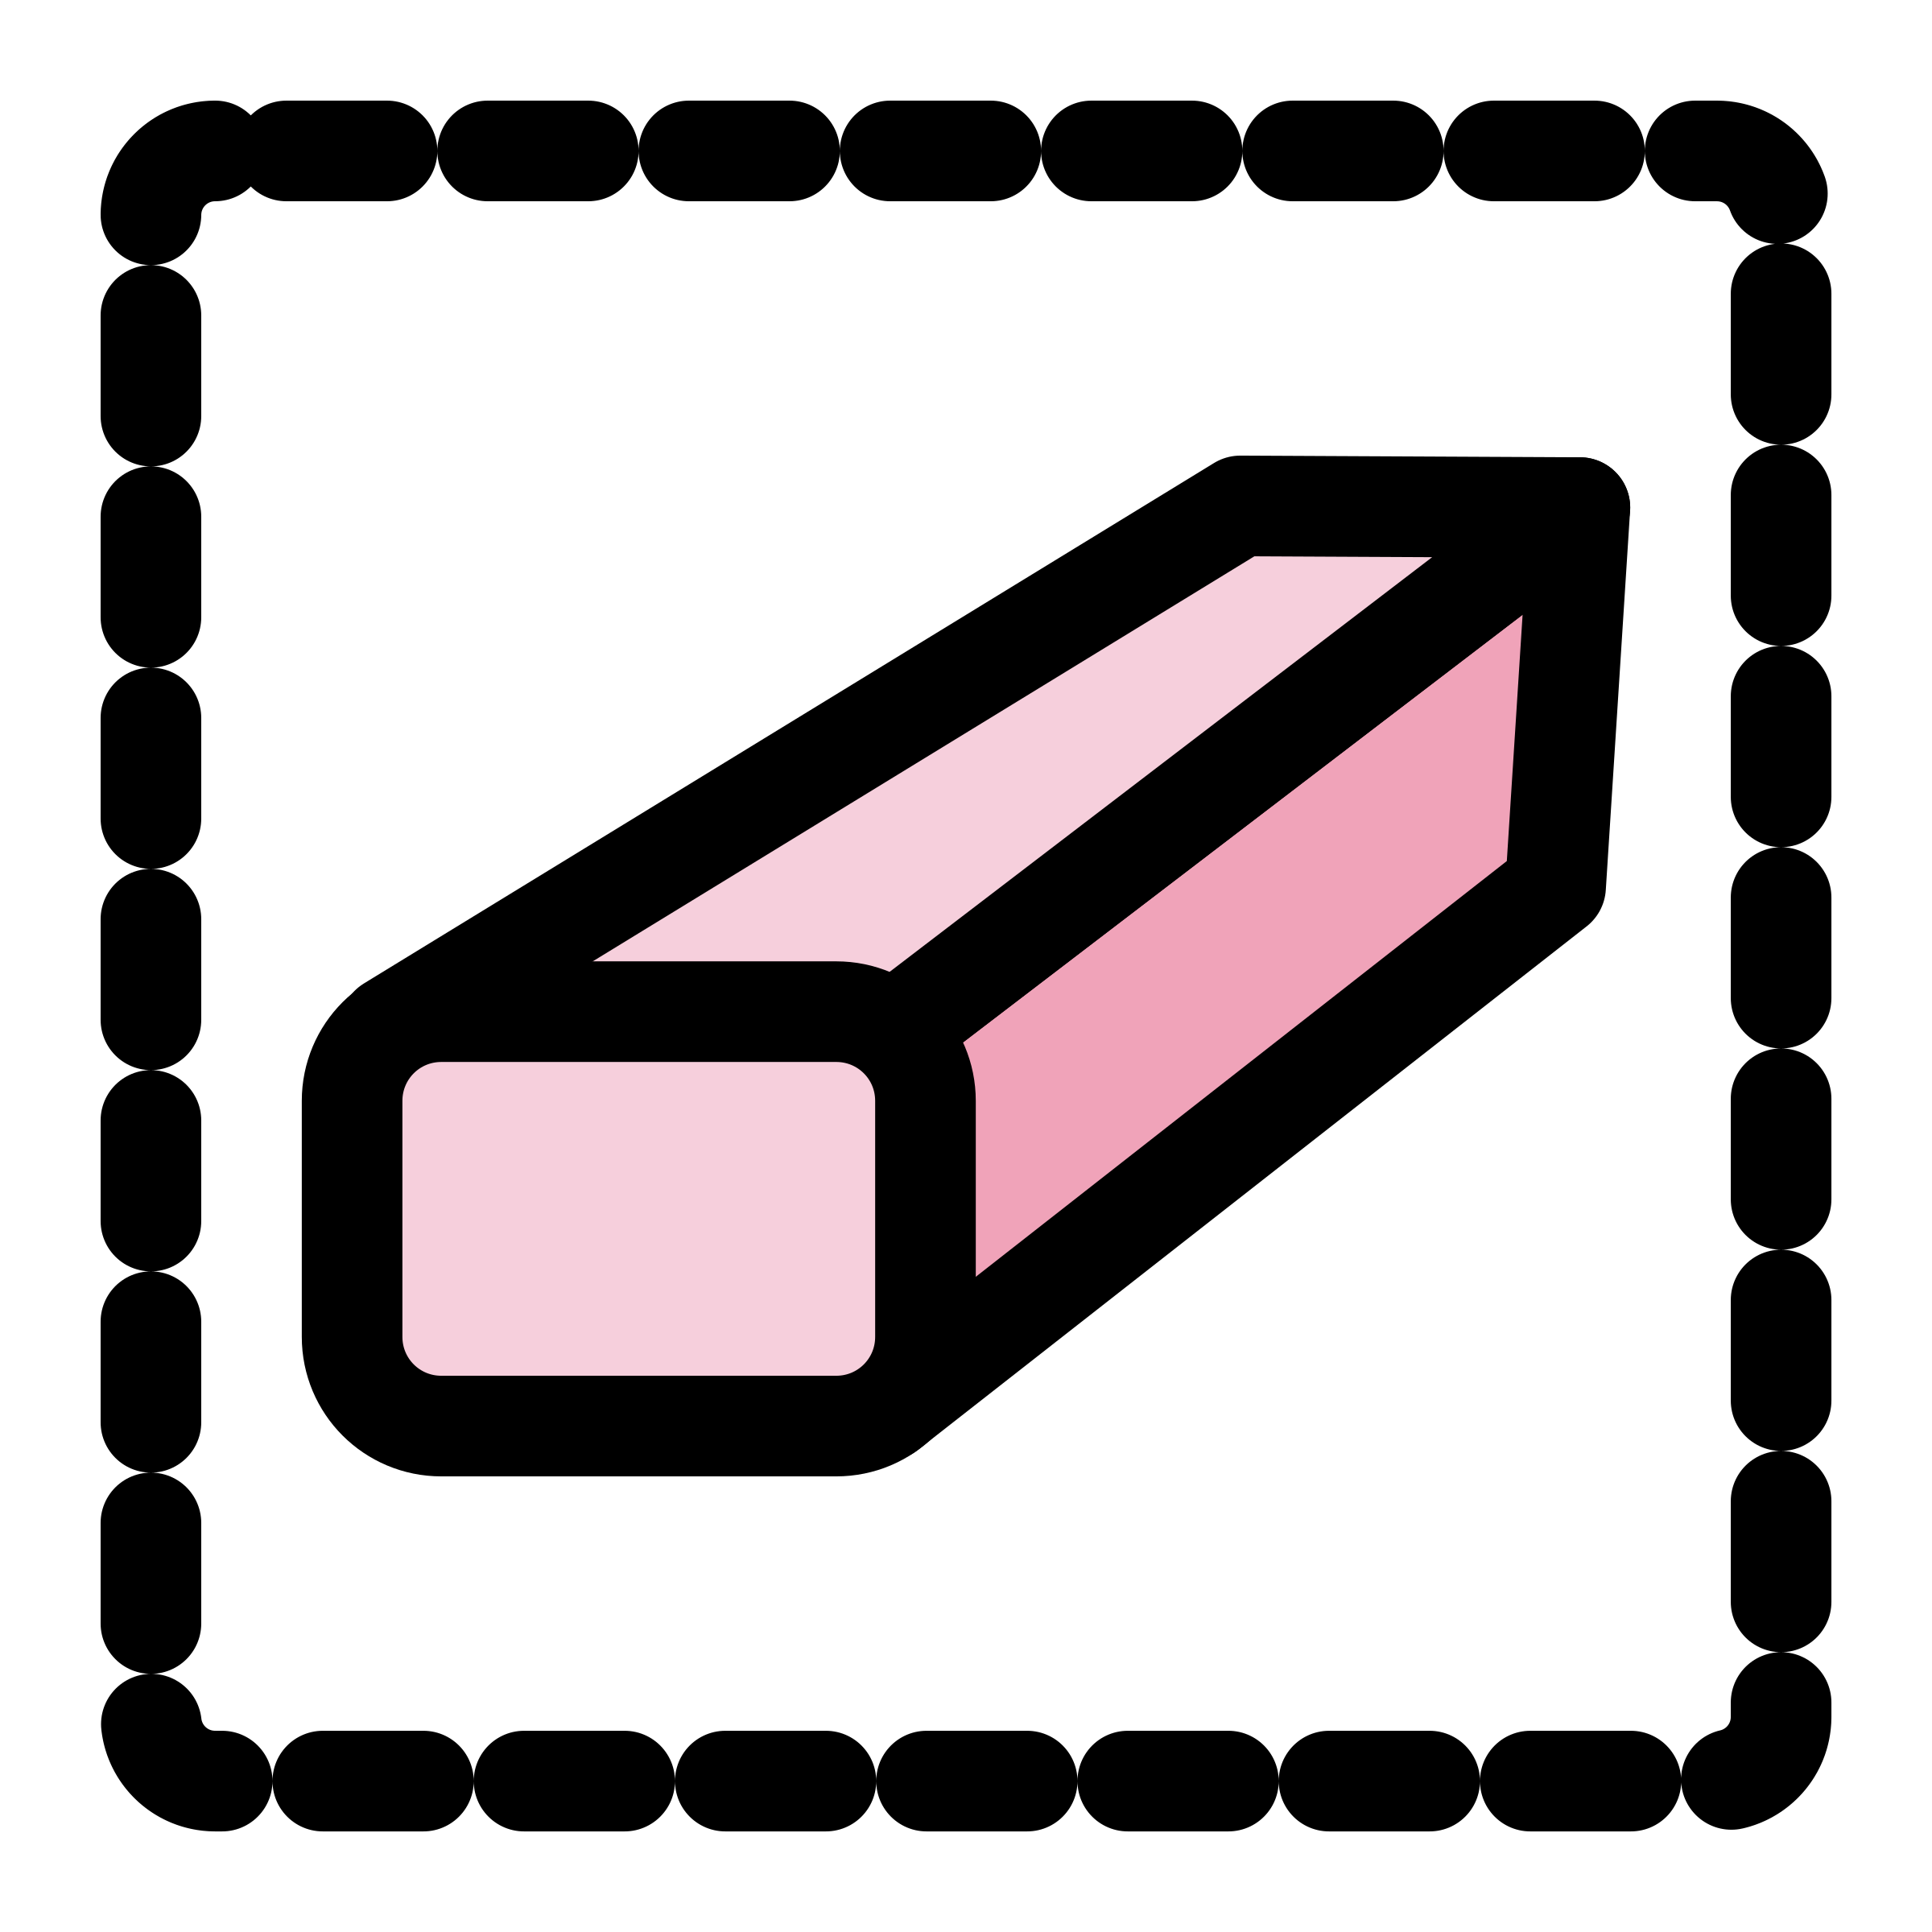 2400x2400 Clipart Primary Tool Eraser Selection